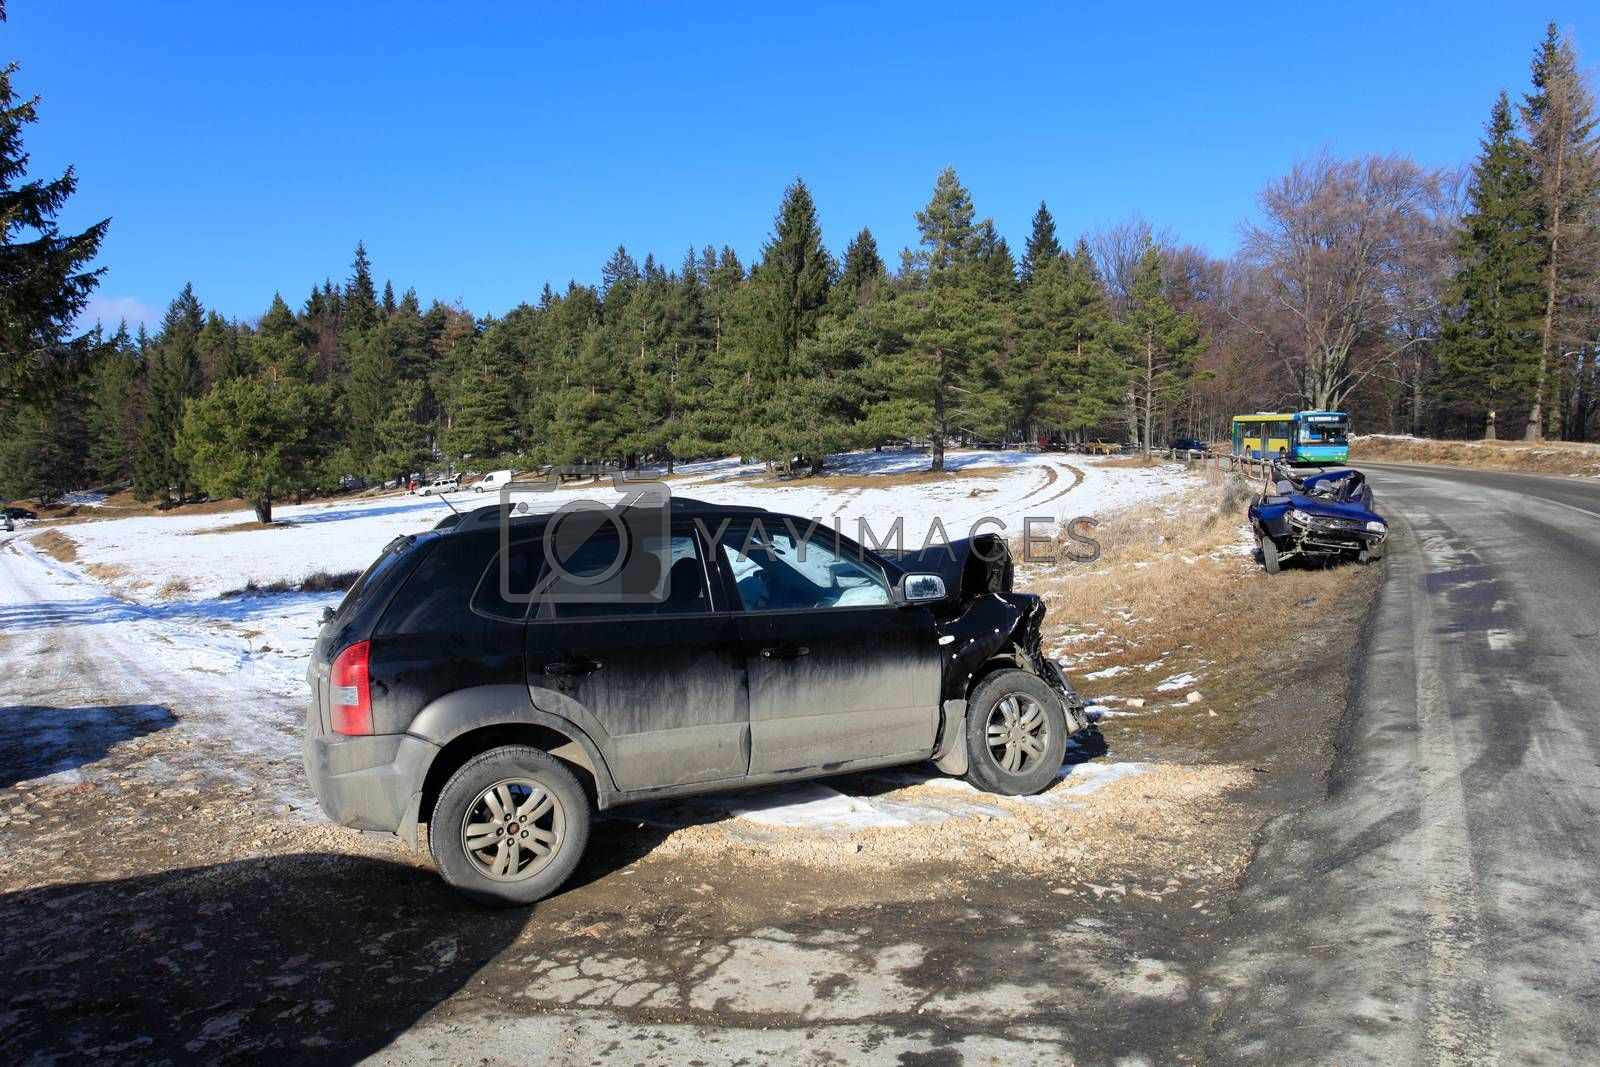 Two car damaged by crash accident on side of the road